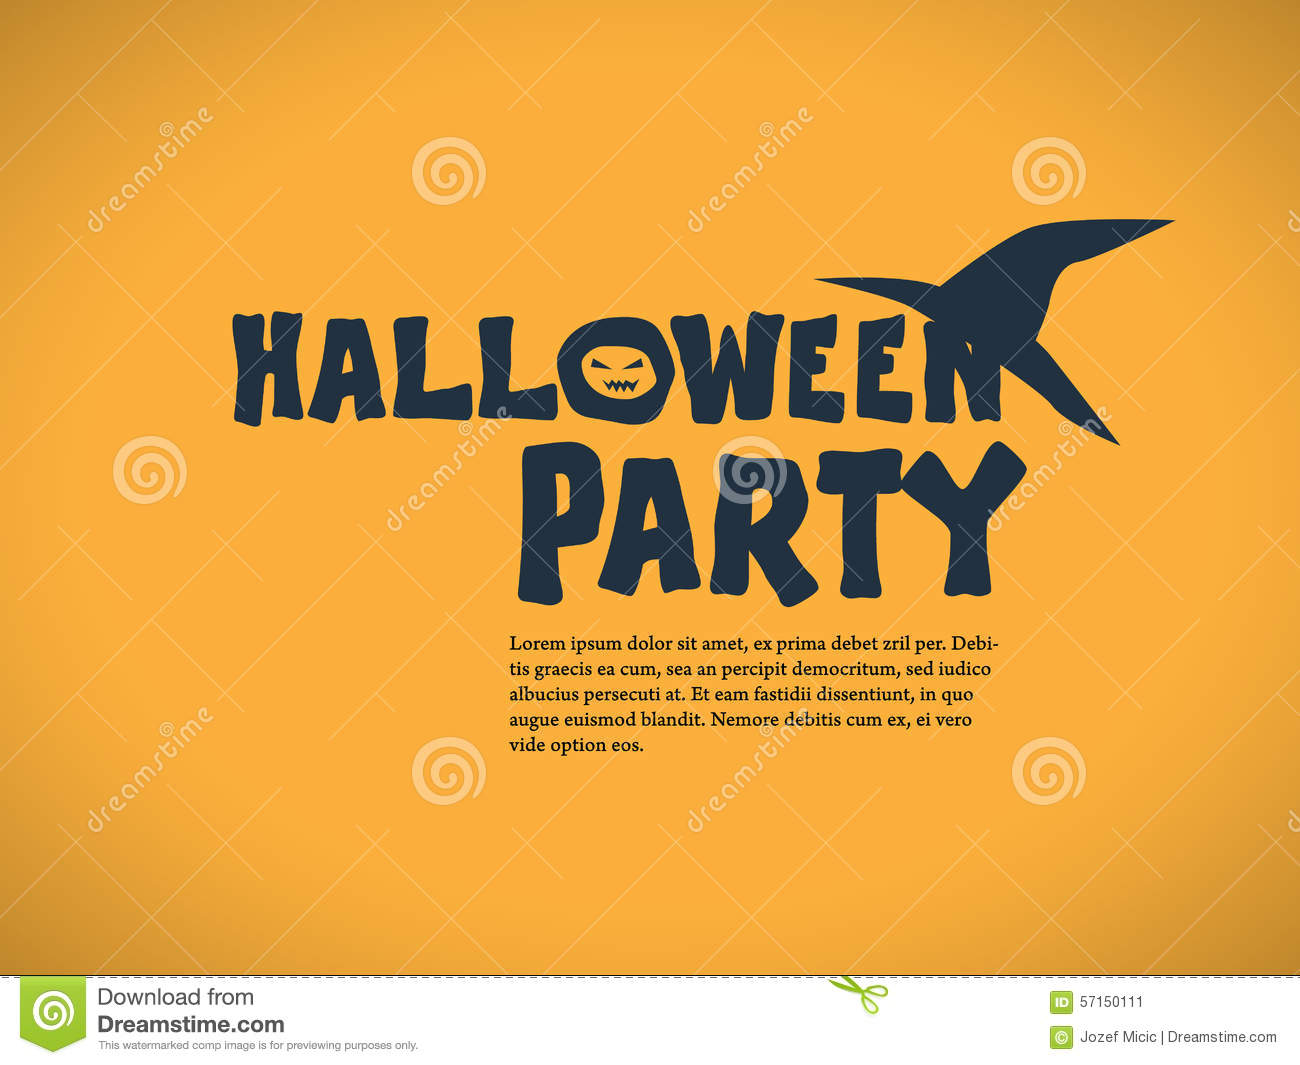 Halloween Party Invitation Template. Holiday Stock Vector - Image ...